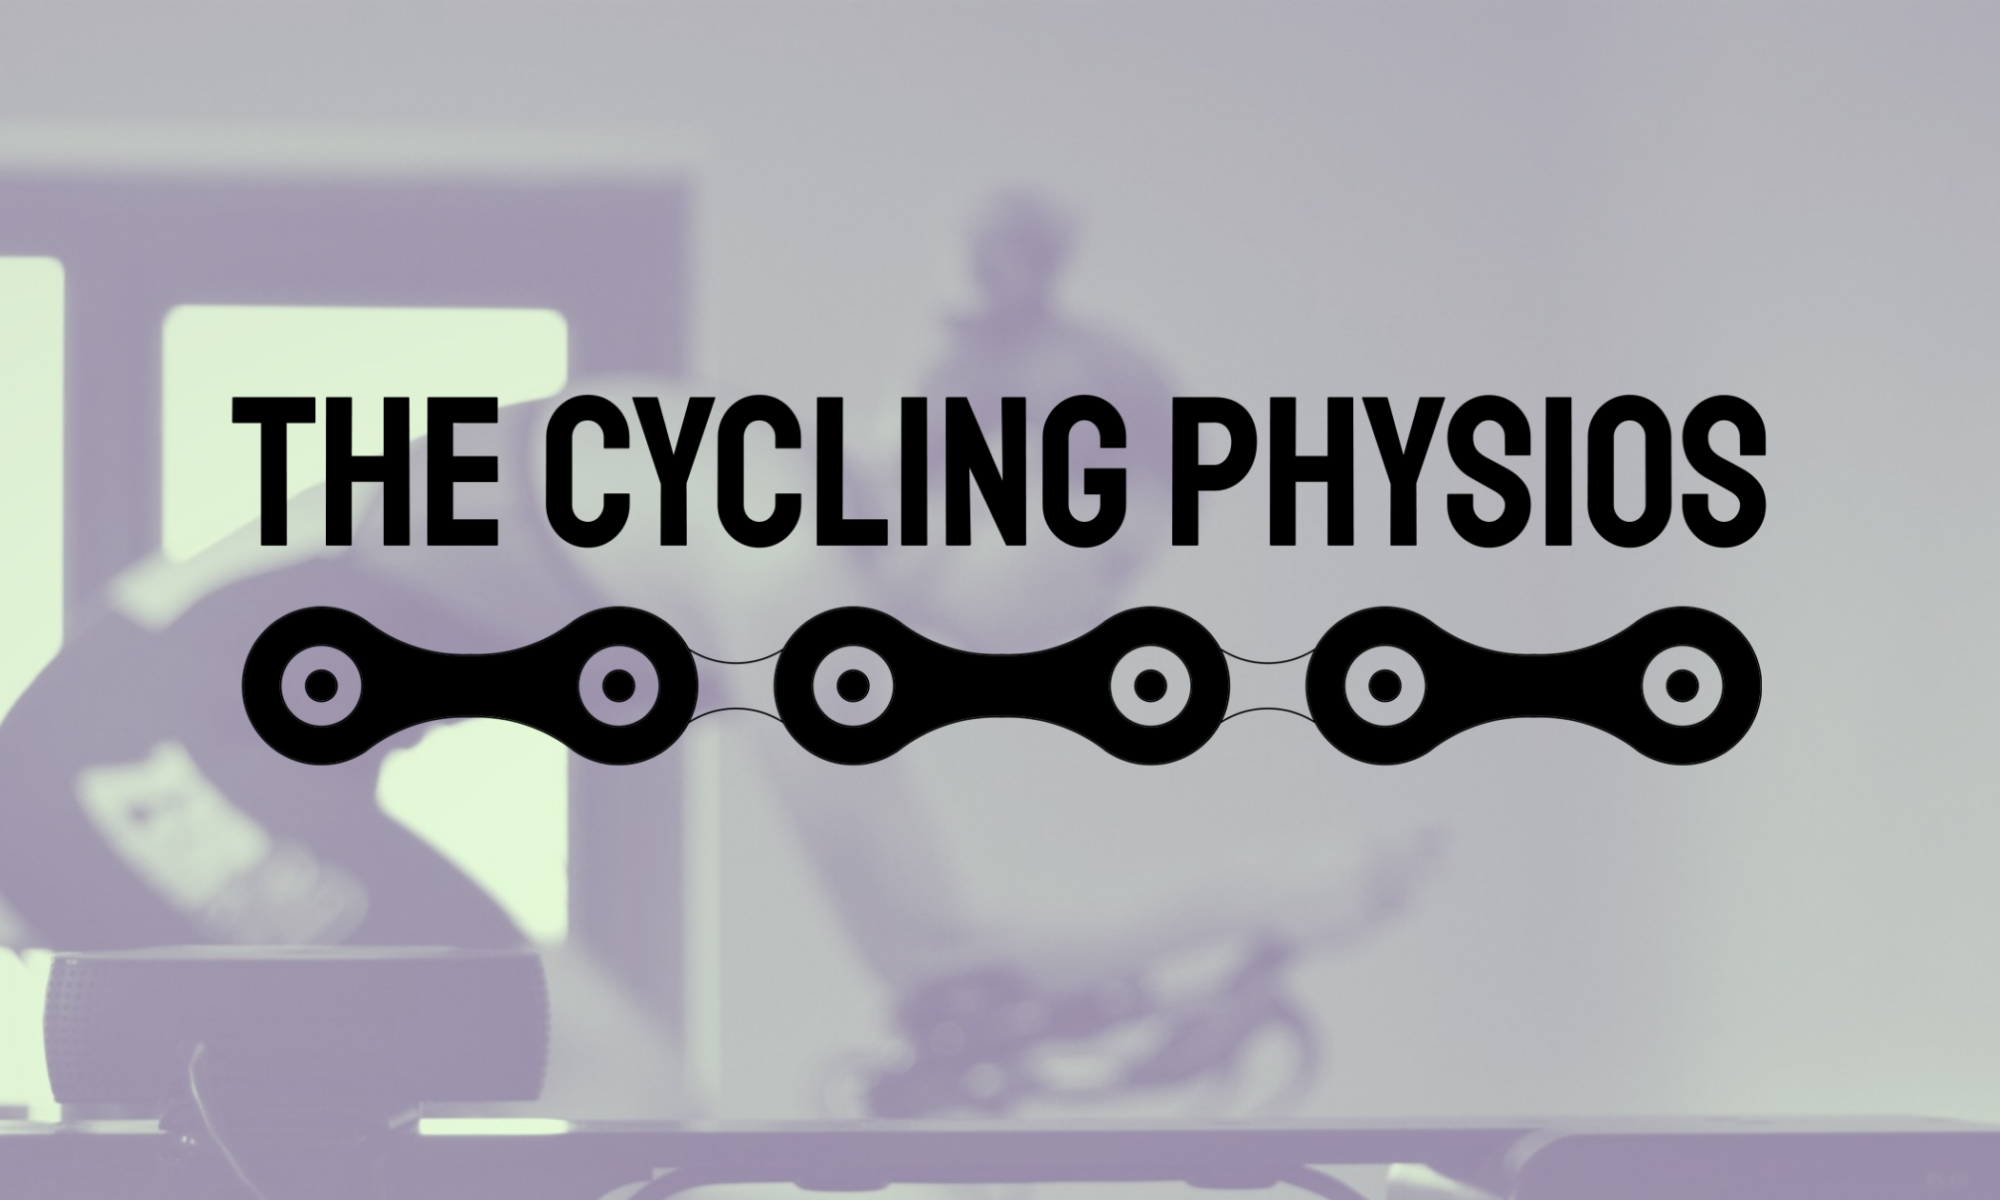 The Cycling Physios